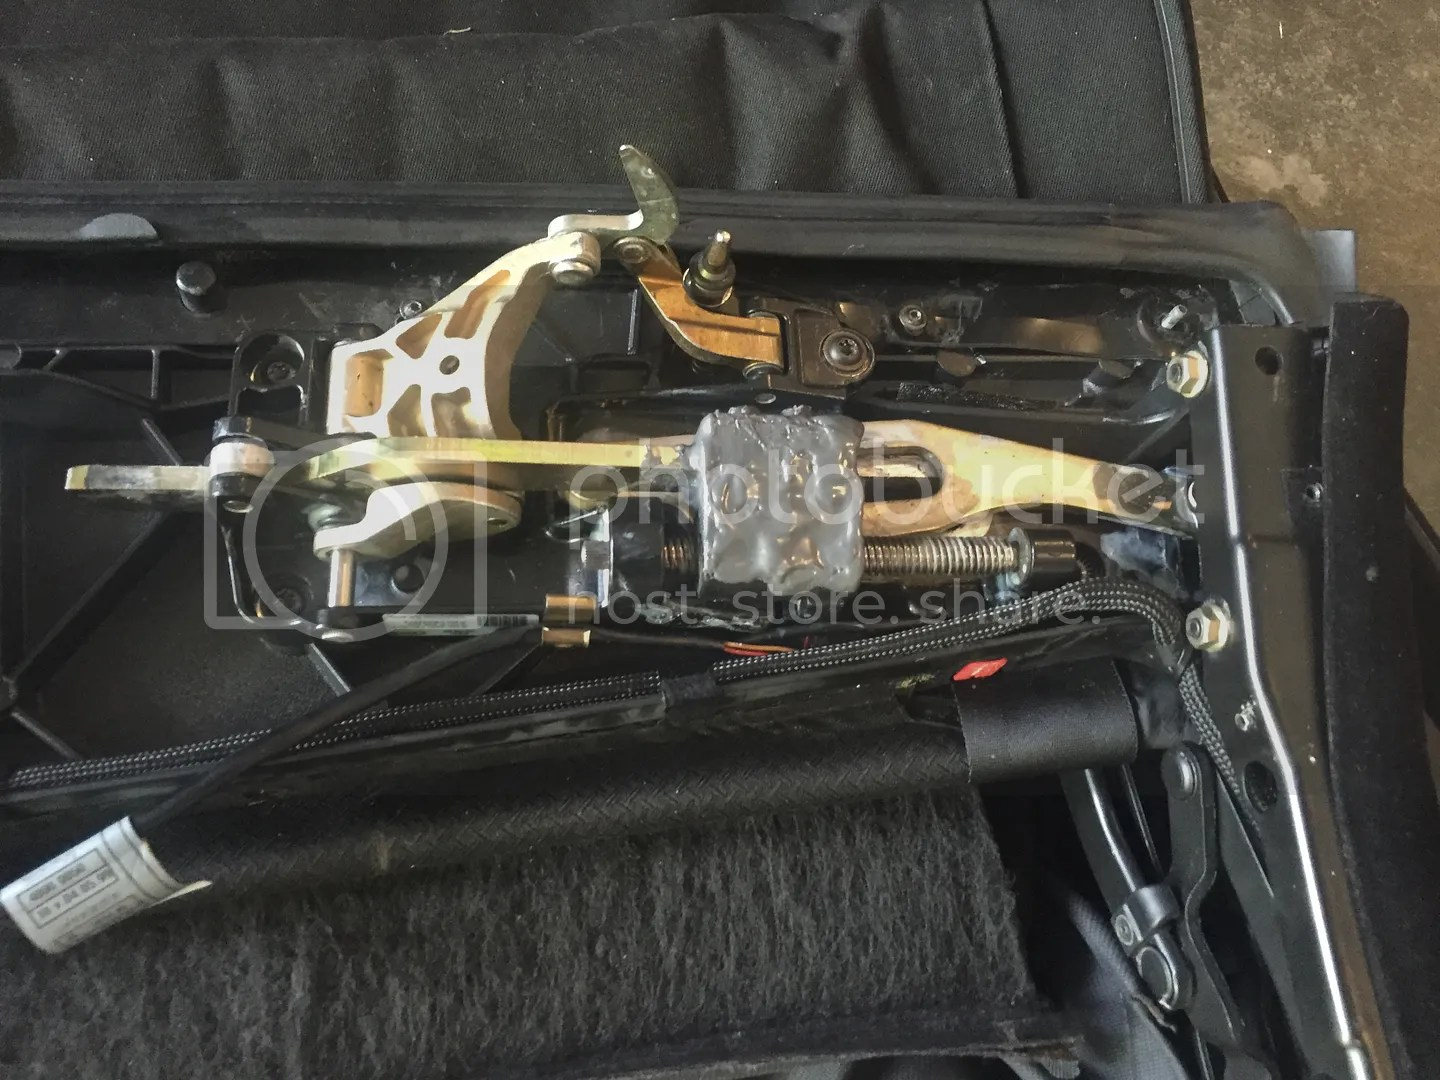 hight resolution of any other parts from the top such as hydraulics or wiring harness is available also the harness was inspected at the drivers side bend and one wire has the